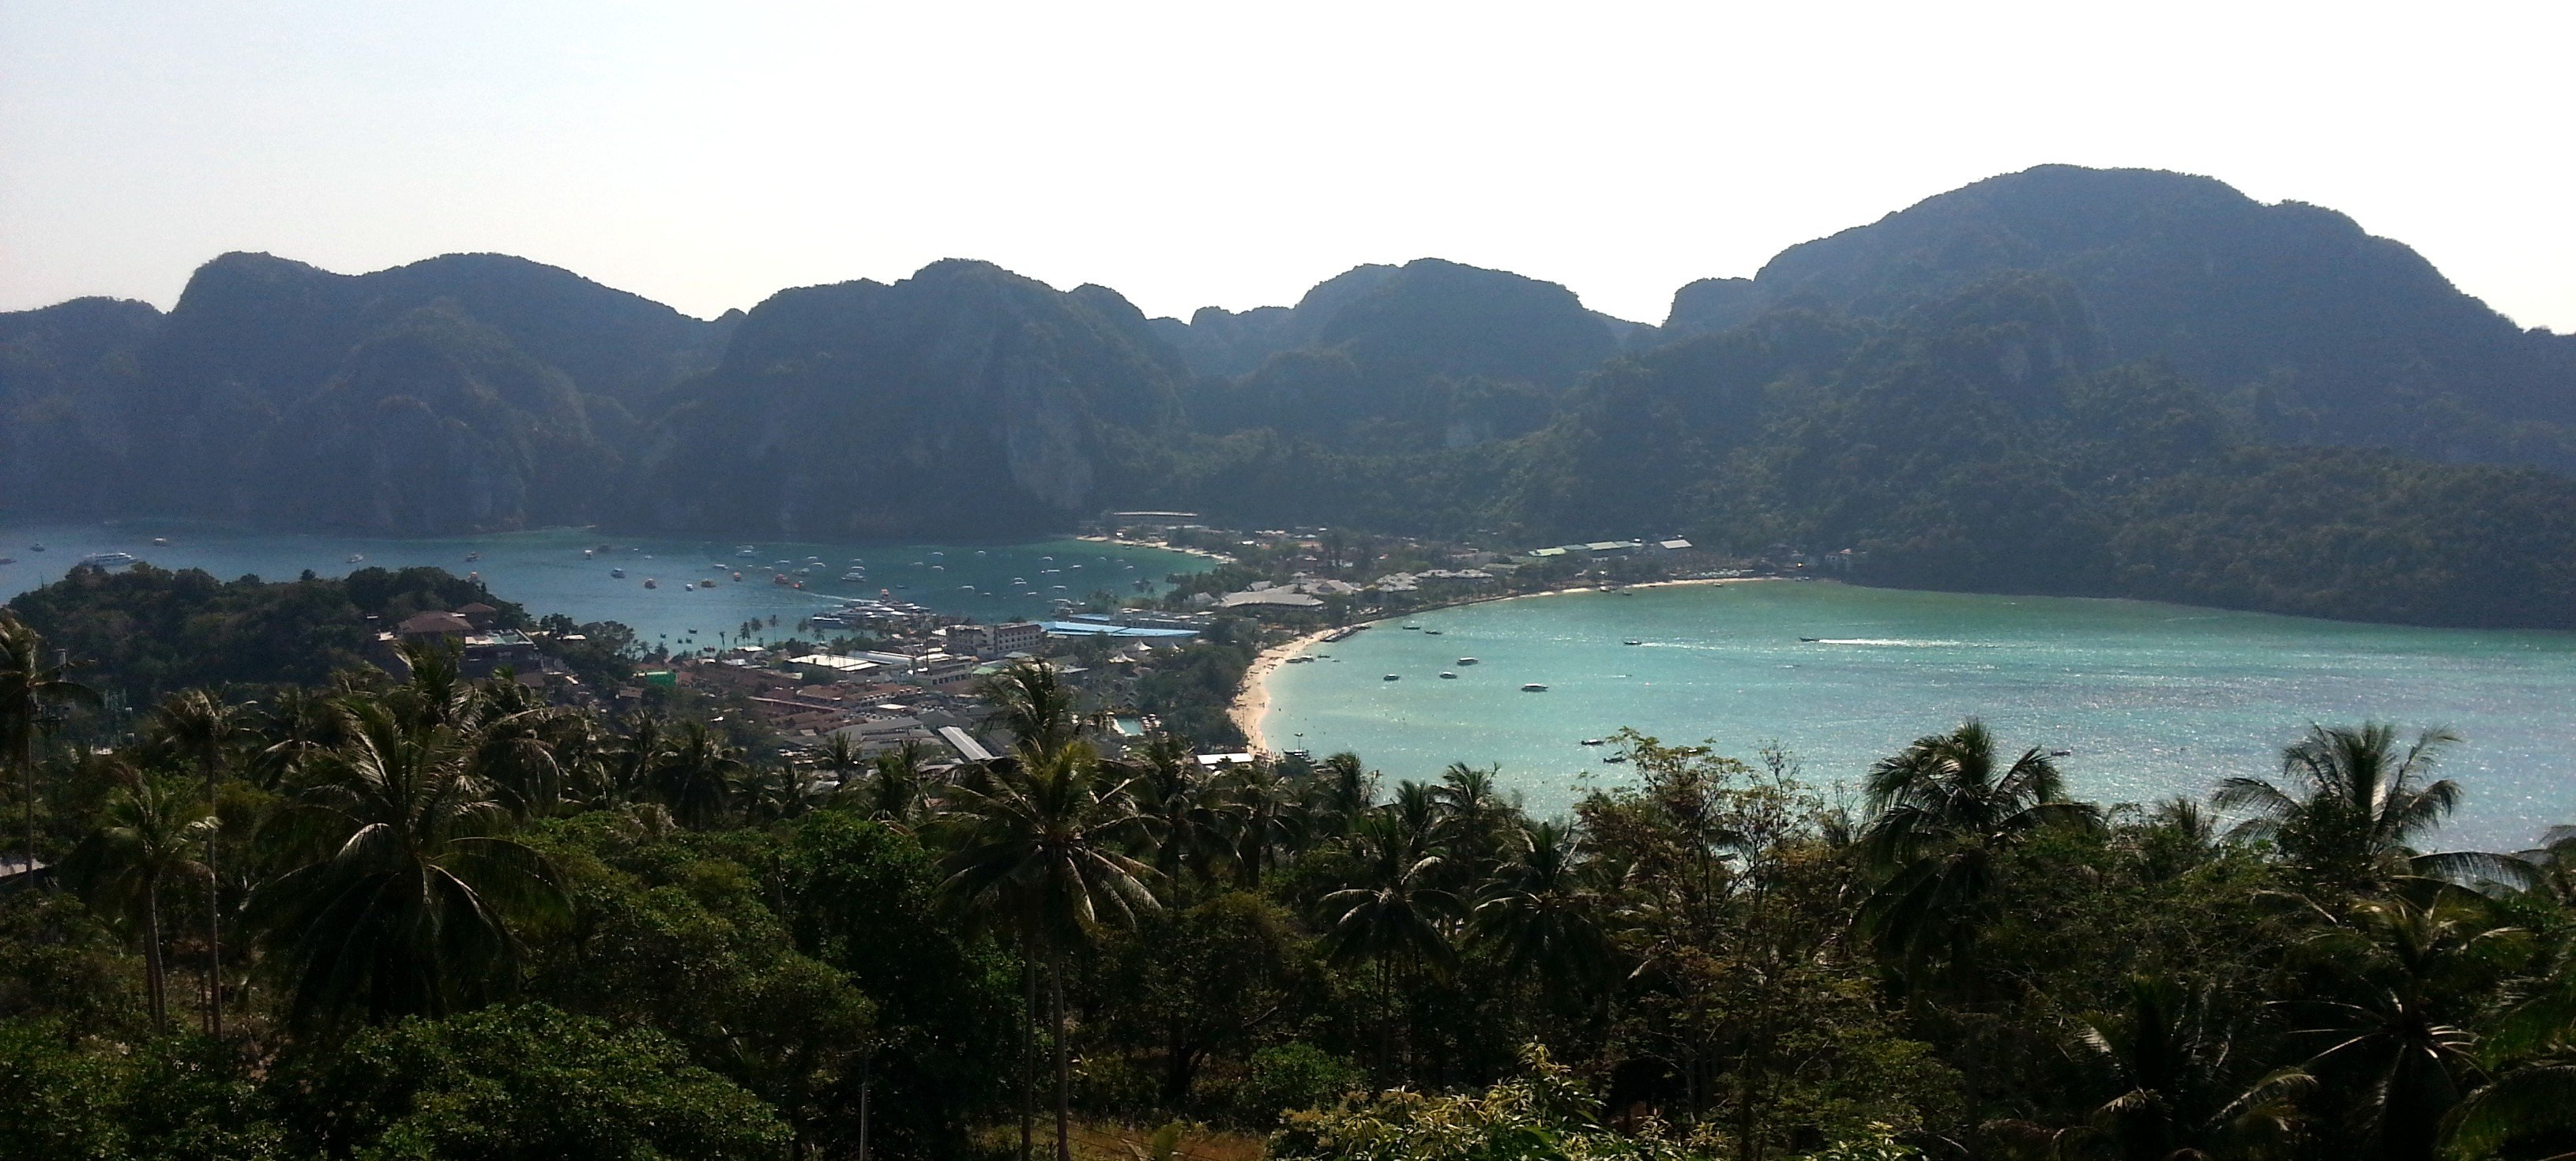 View over Tonsai Bay in Koh Phi Phi